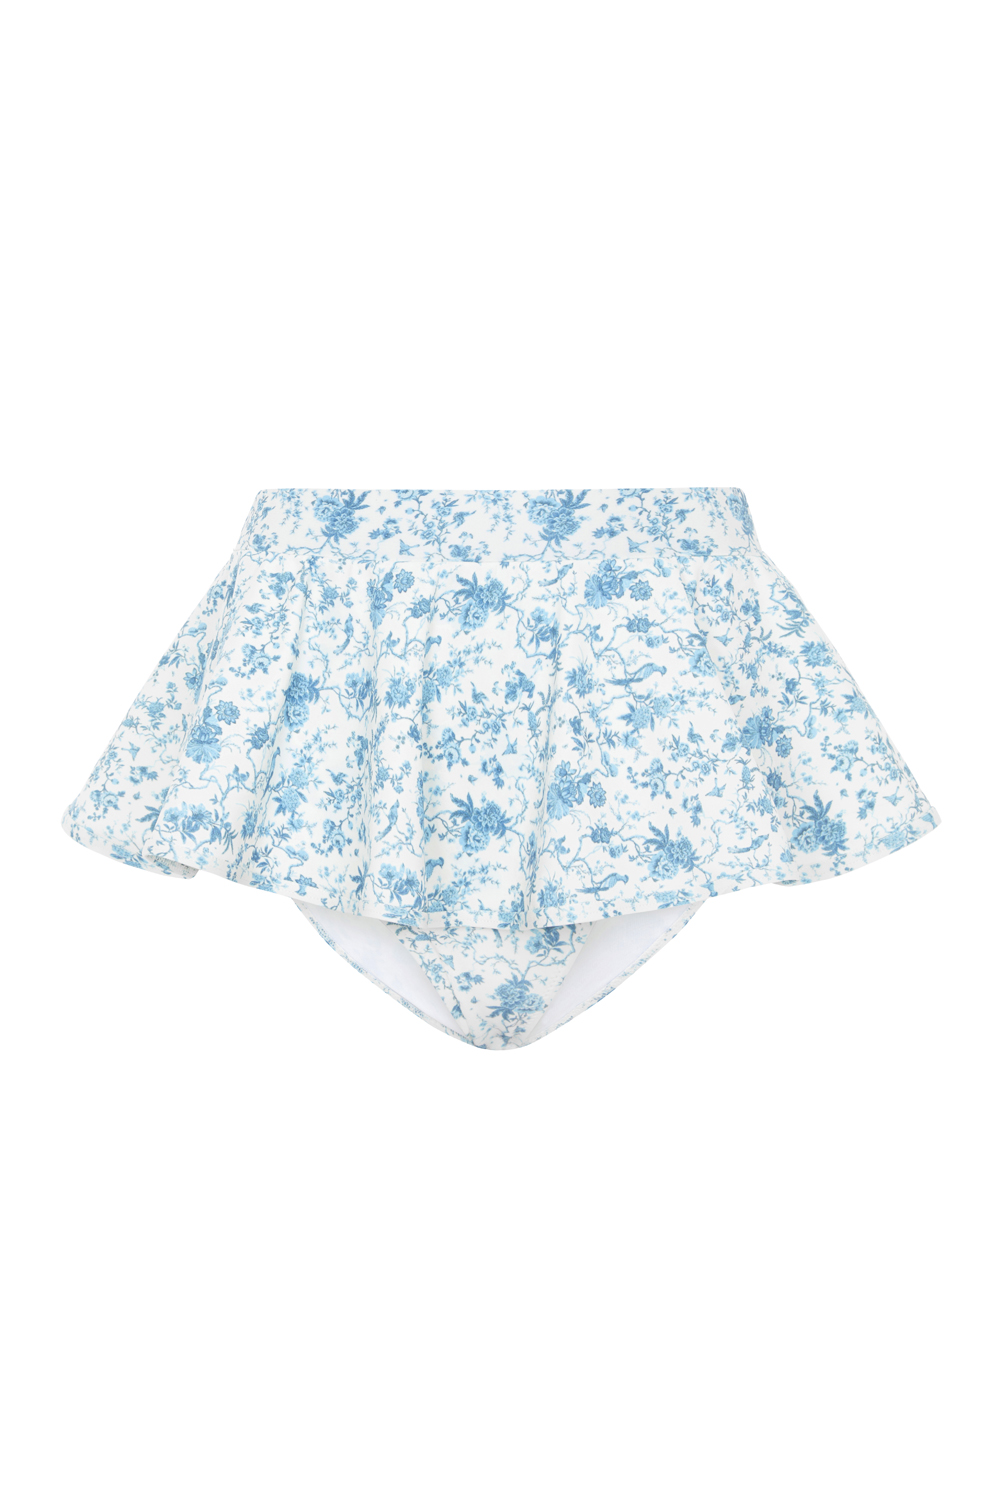 Elle High Waisted Bottom - Bloom by Holiday Romance on curated-crowd.com